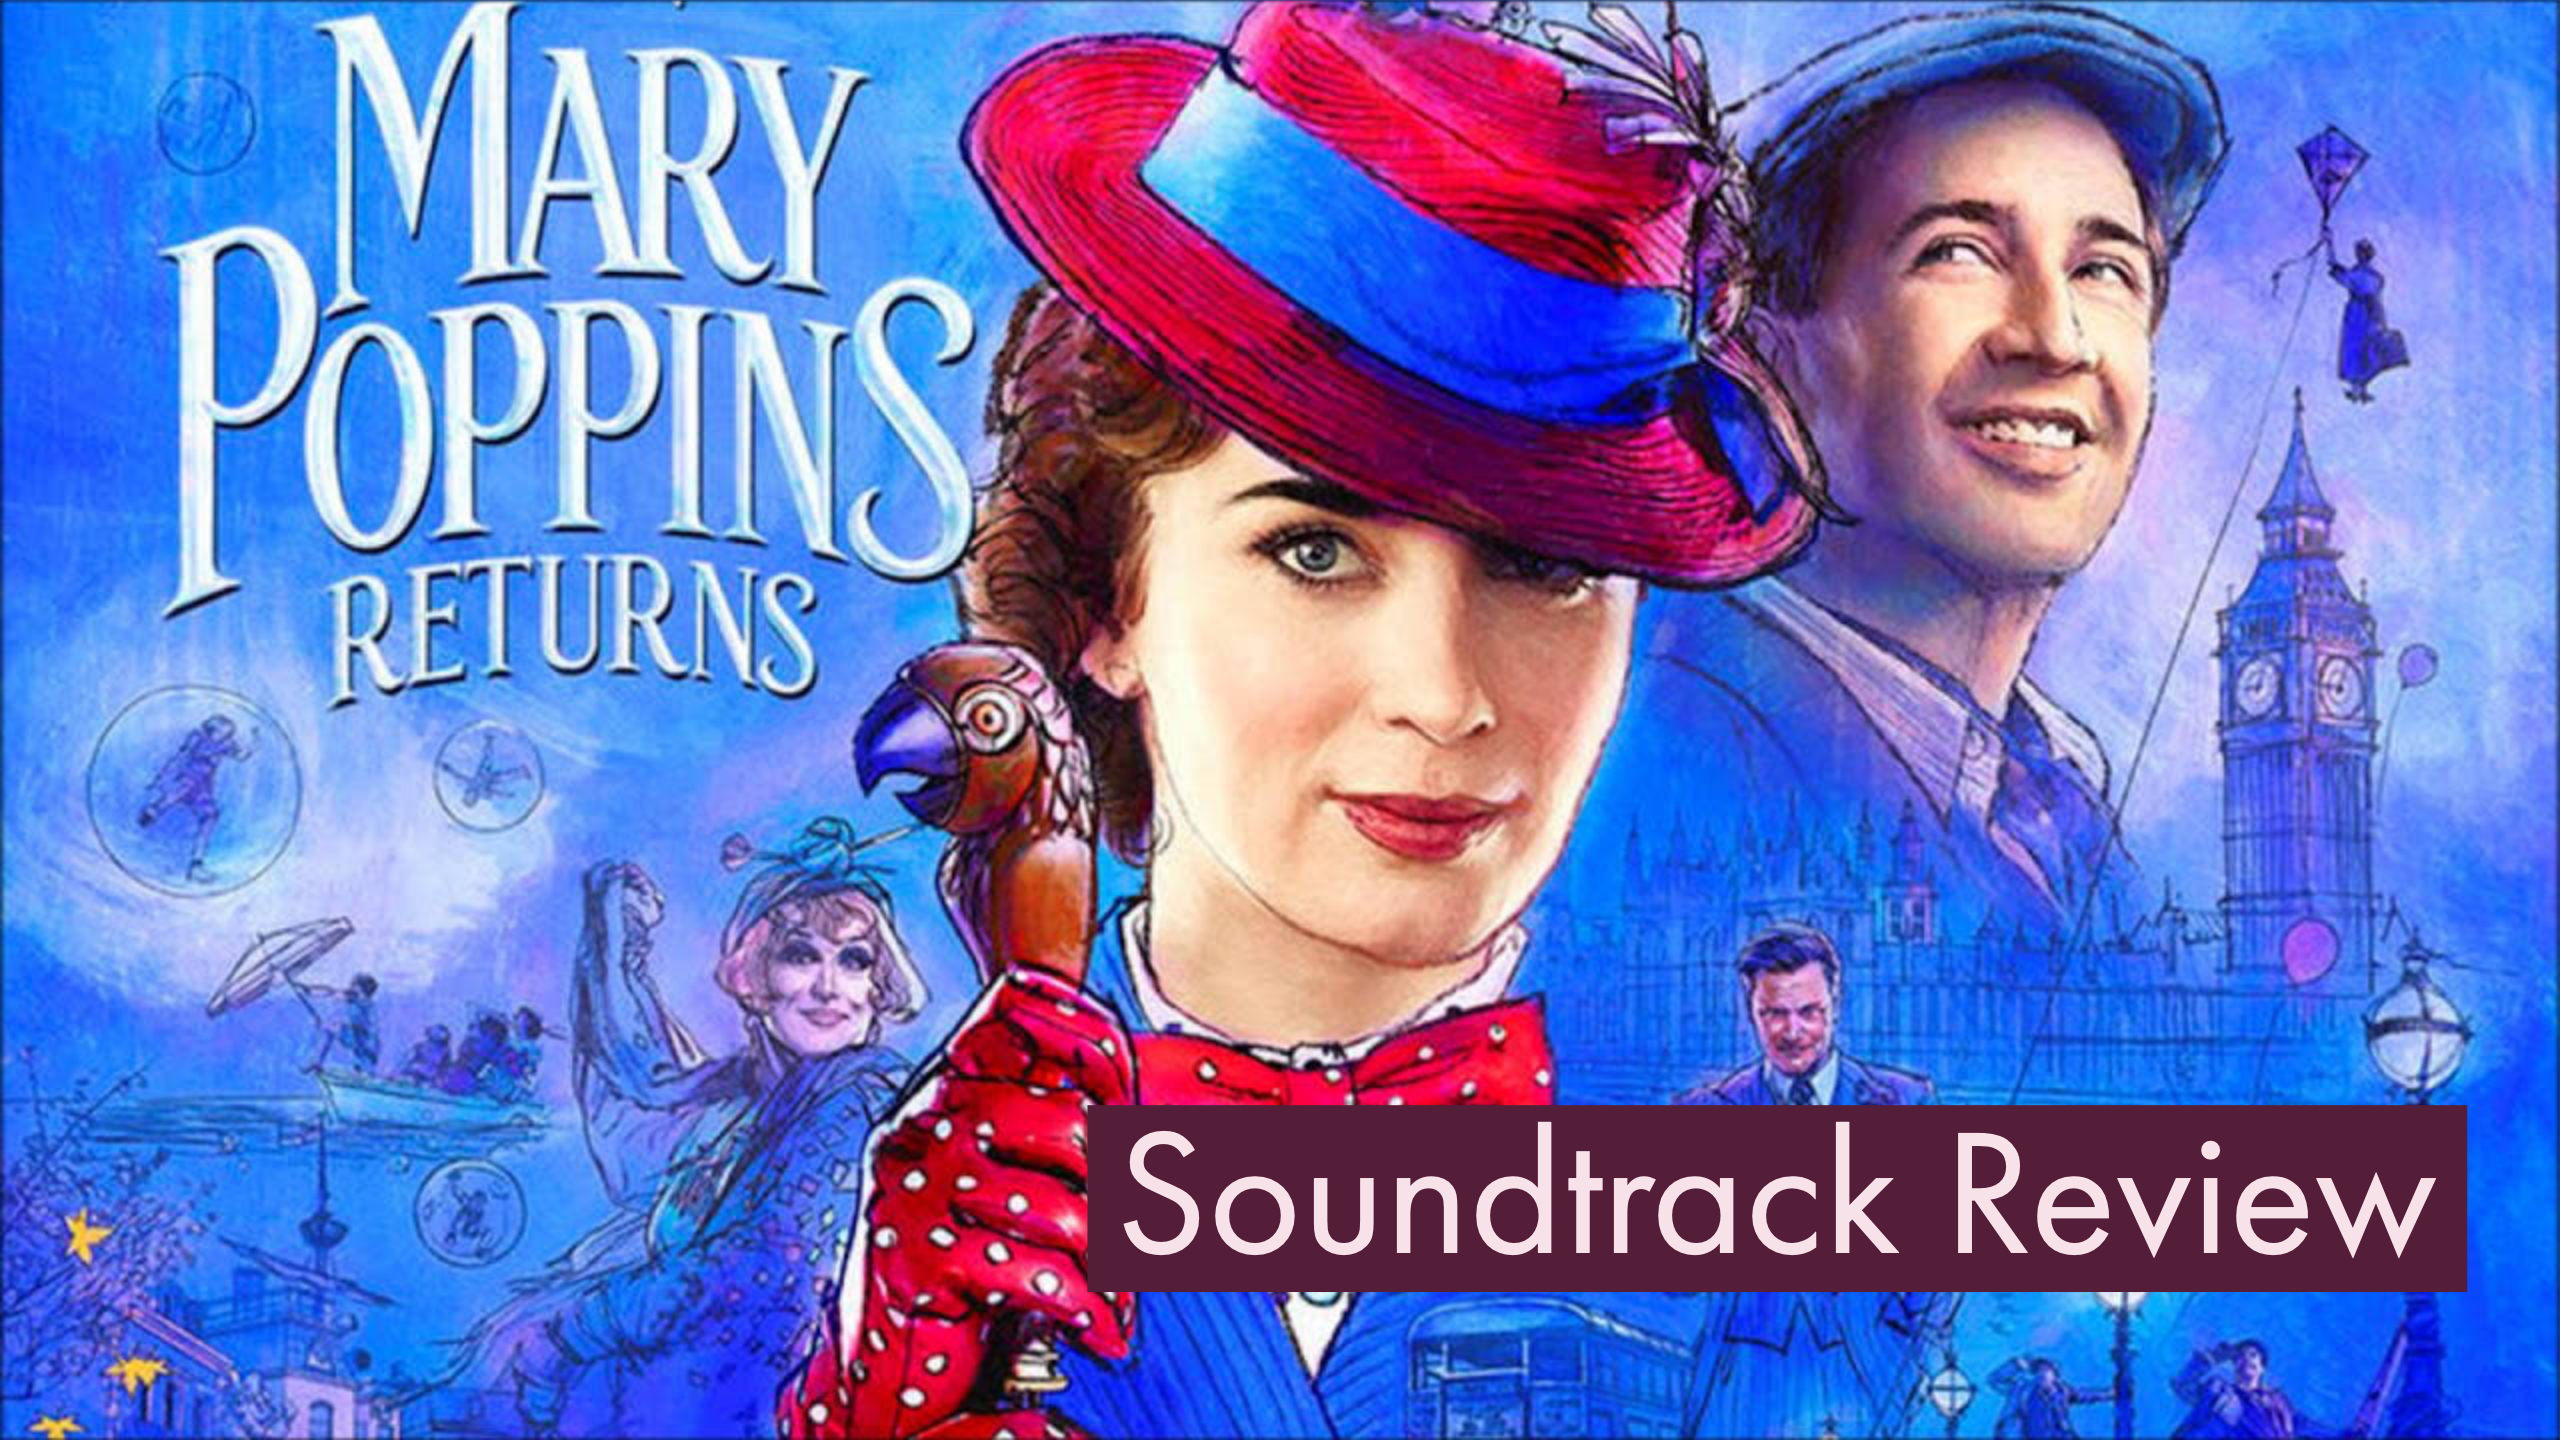 Mary Poppins Returns Soundtrack Review